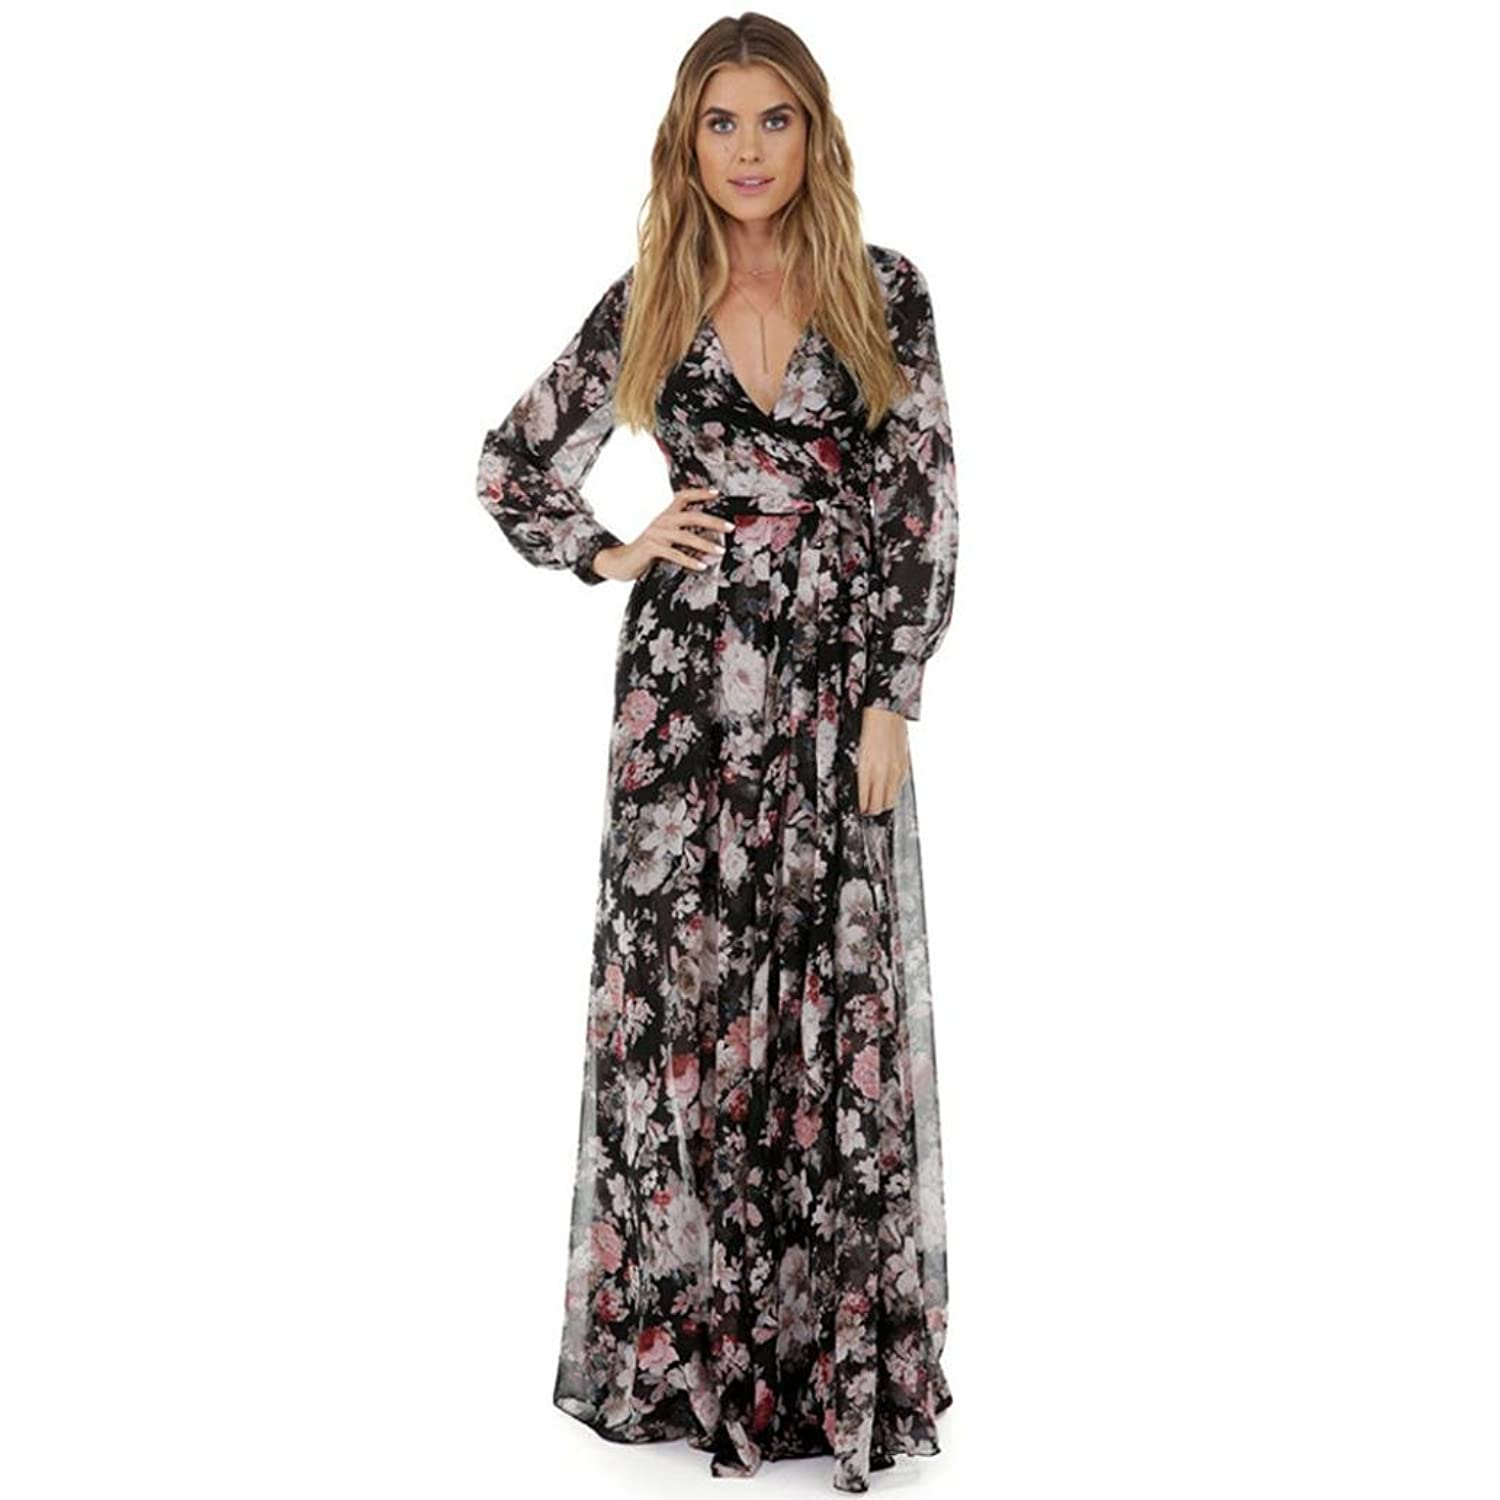 b98fb4980e 85%OFF FORH Damen Kleid , Frauen V Neck Boho Chiffon Blumen Long Maxi  Evening